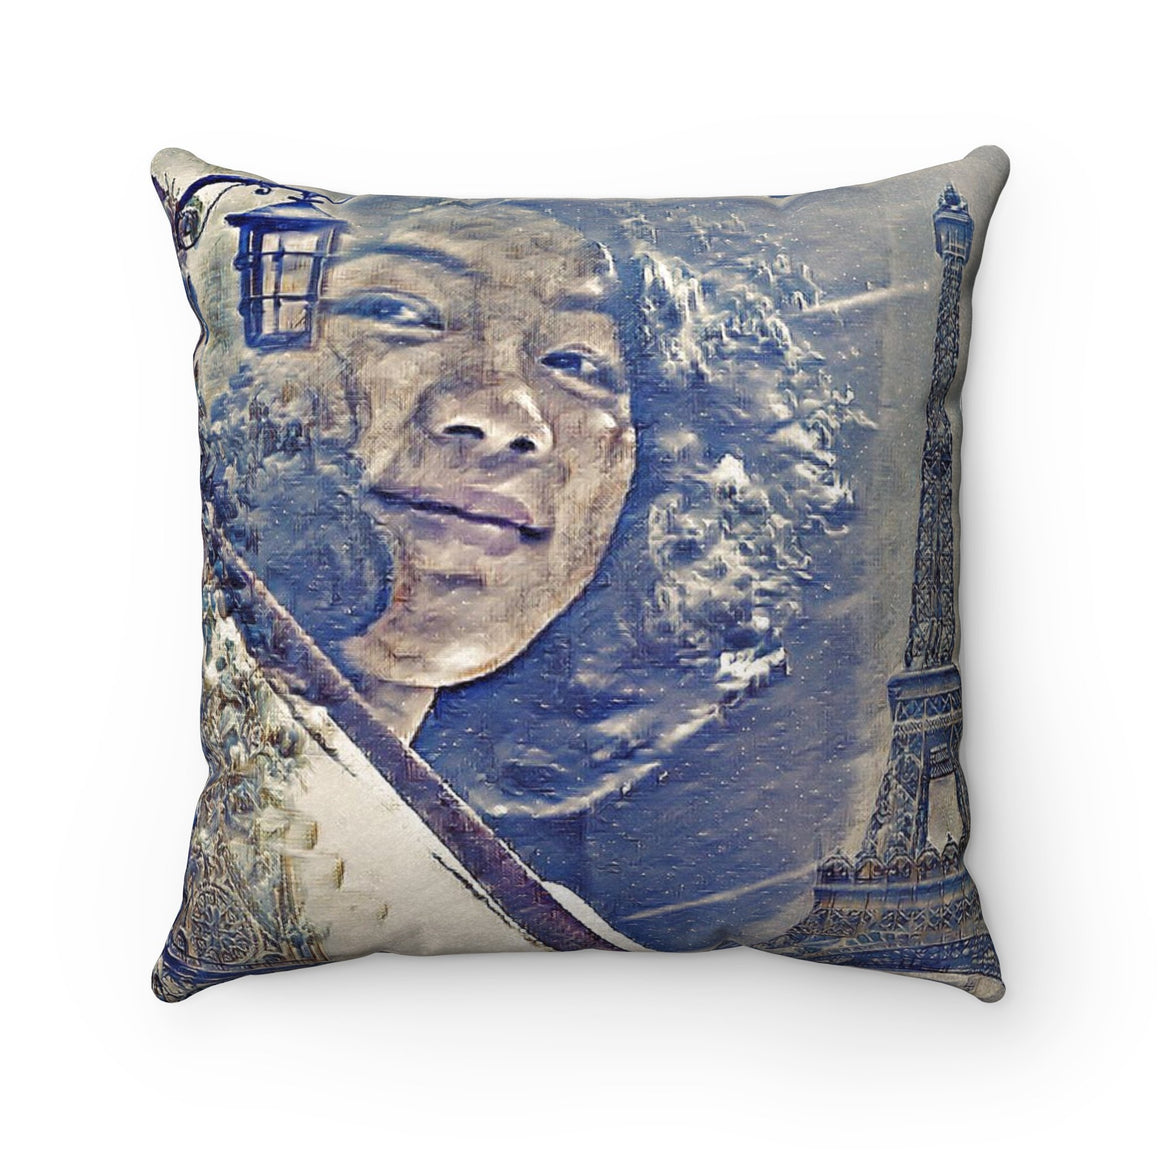 Levi Thang Vintage Face Design O Faux Suede Square Pillow Case